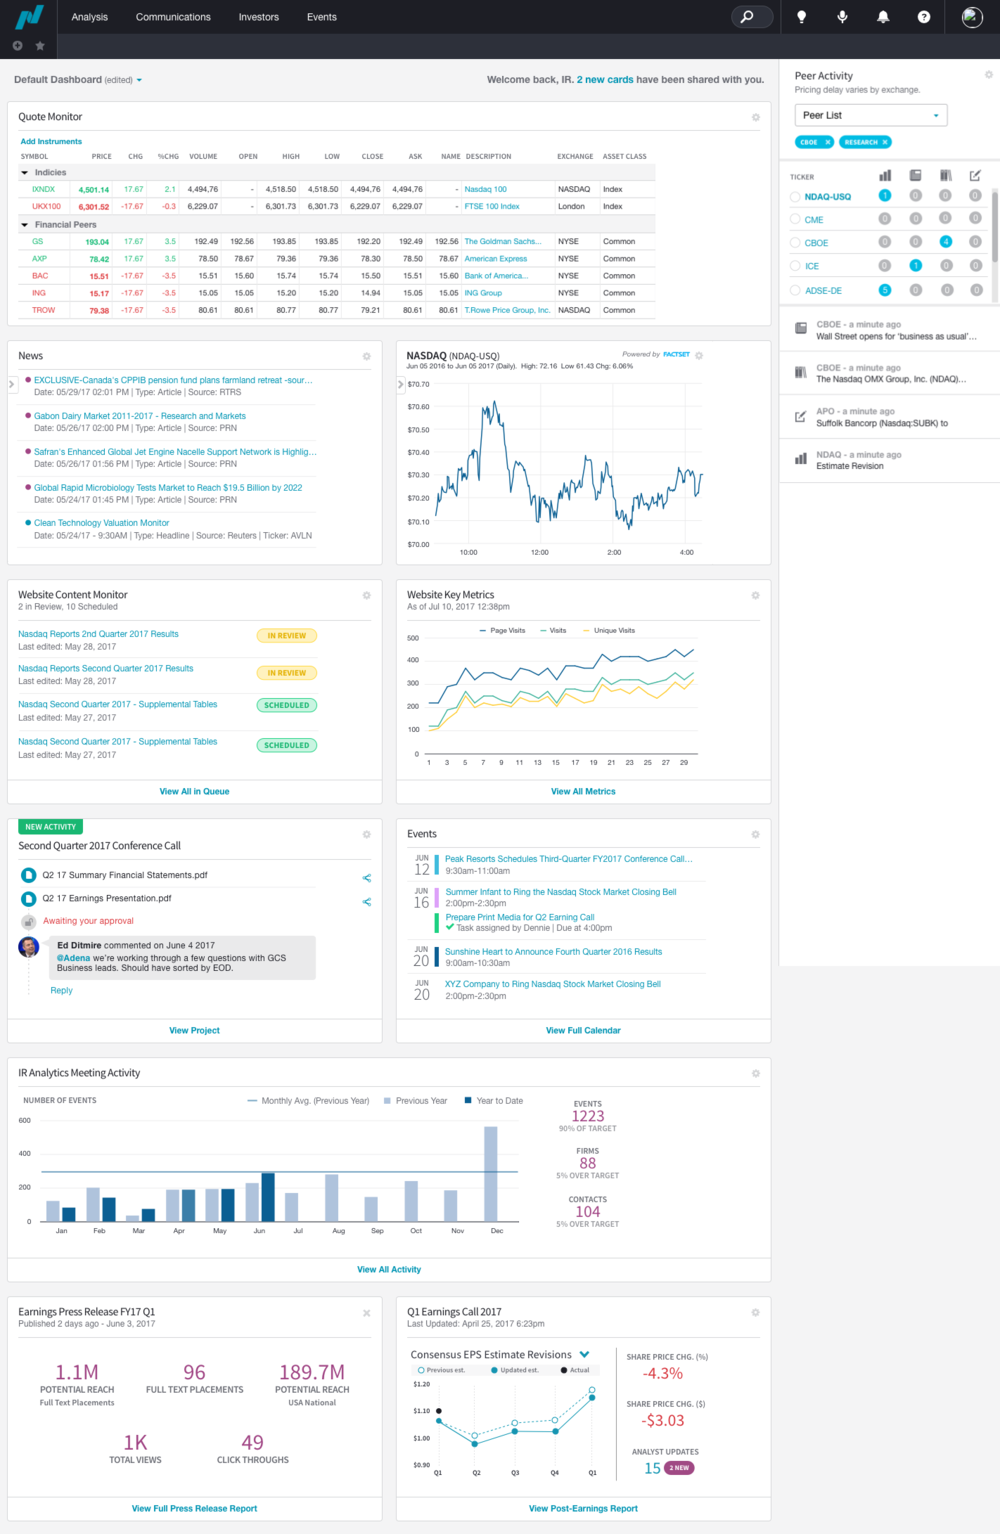 Latest version of the dashboard wit both content and visual refinement.